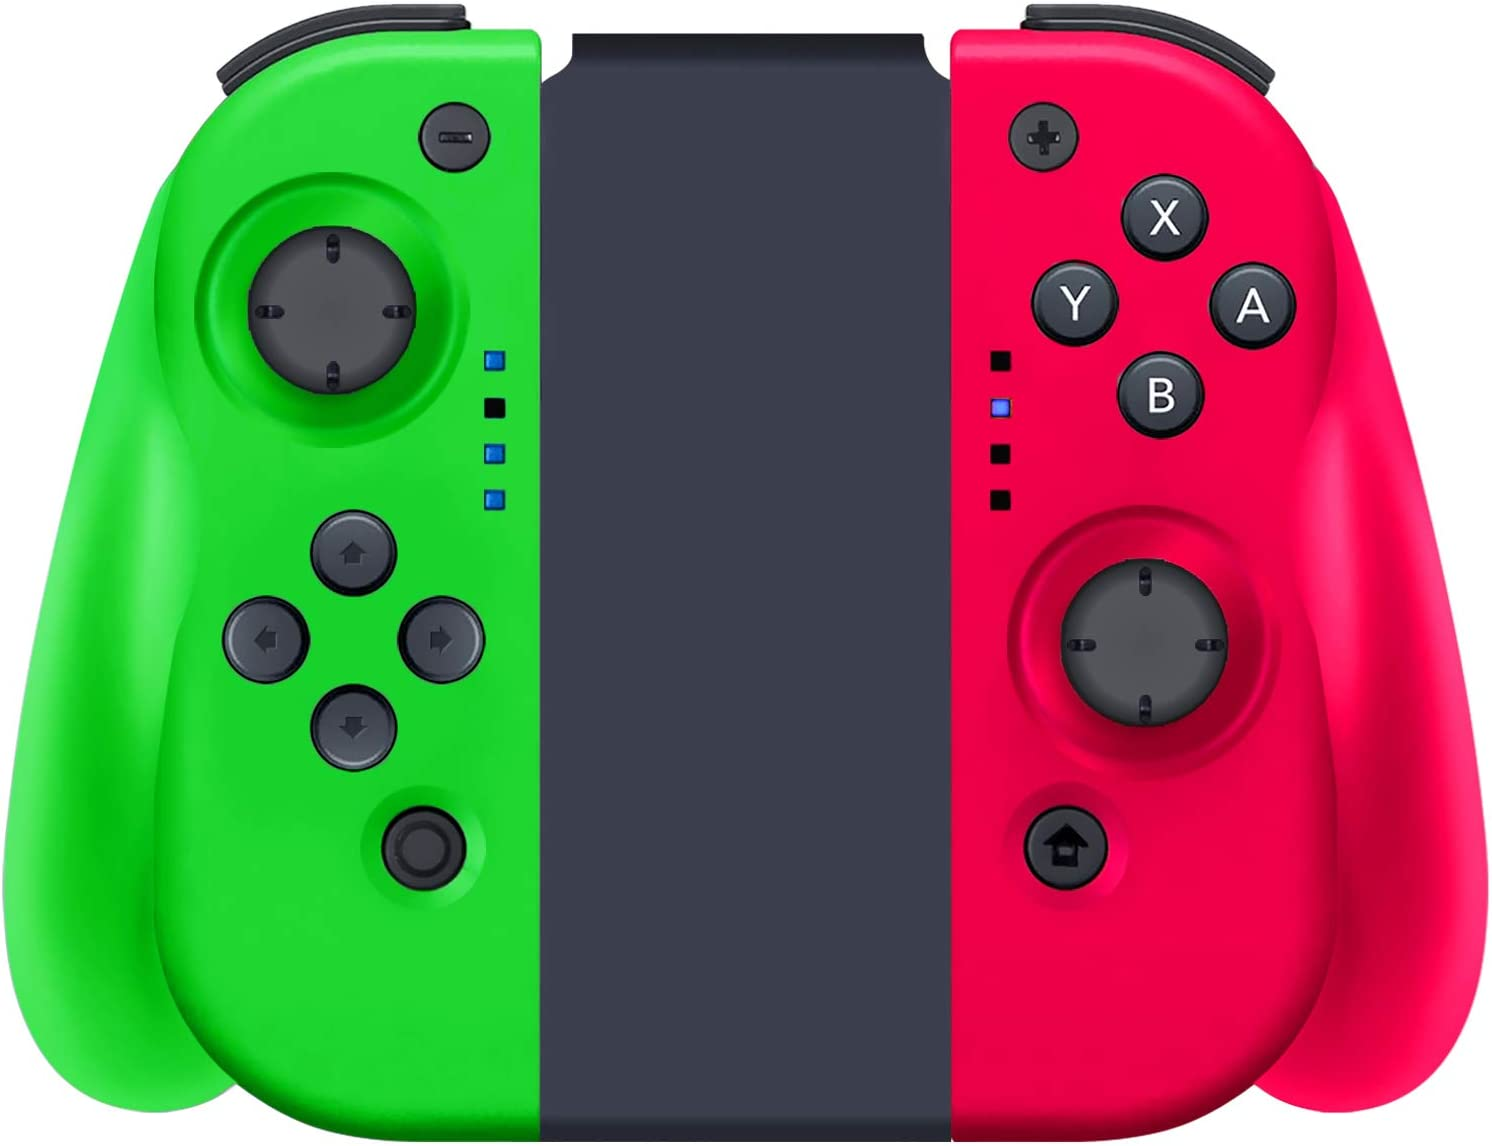 YHT Wireless Joy Con Controller for Nintendo Switch, Replacement Joy Pad Controllers Compatible for Nintendo Switch Console,Comfortable Handheld Gamepad(Pink&Green)